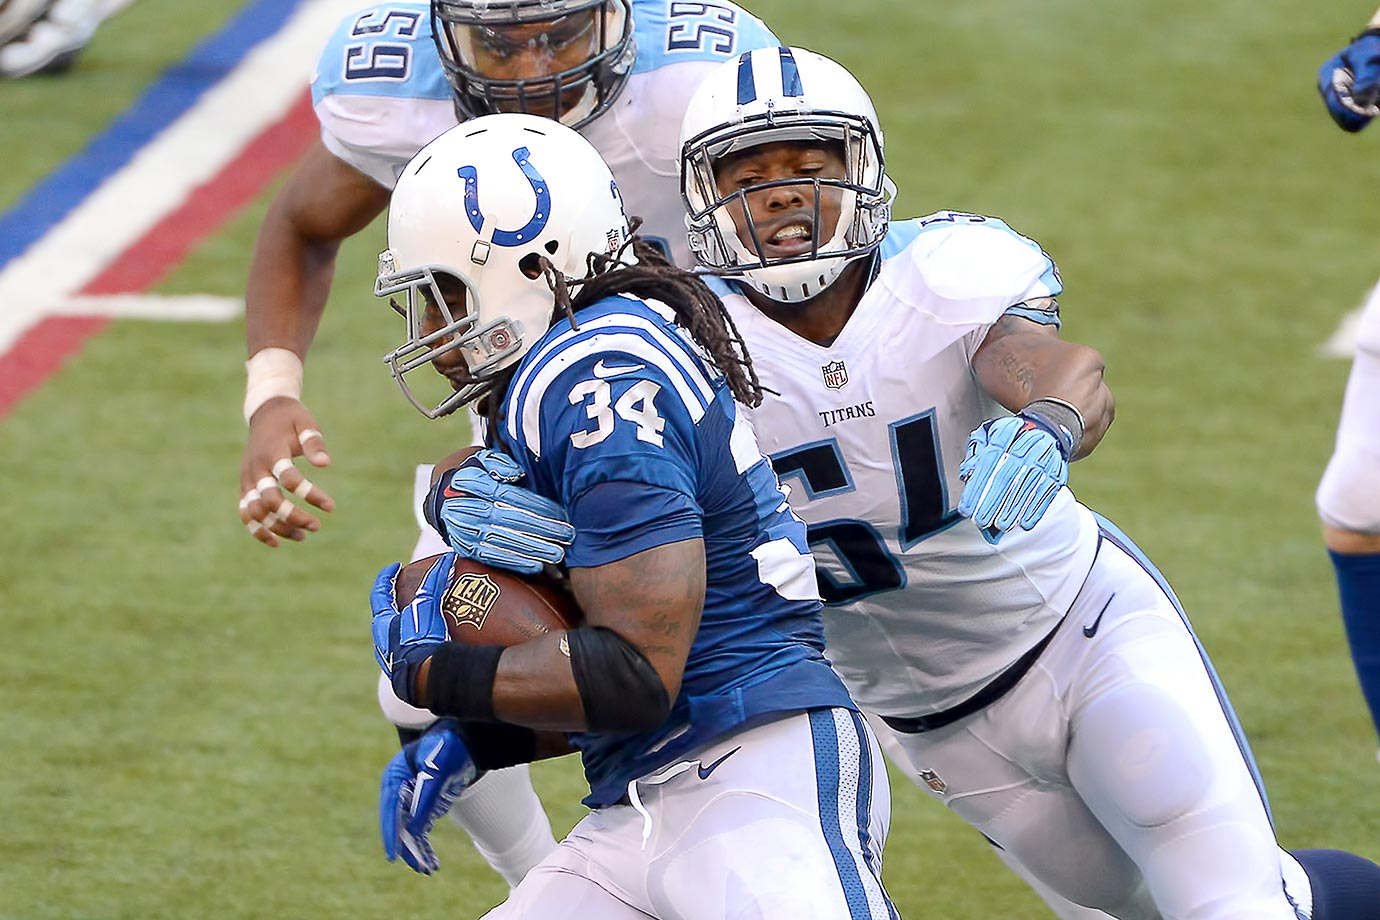 Williamson was a real asset in Ray Horton's blitz-happy Titans defense, showing range and impressive tackling ability. The 2014 fifth-rounder racked up two sacks against the Steelers in November, and he'll get more chances to do that as the strong-side linebacker and playcaller in Tennessee's defense.